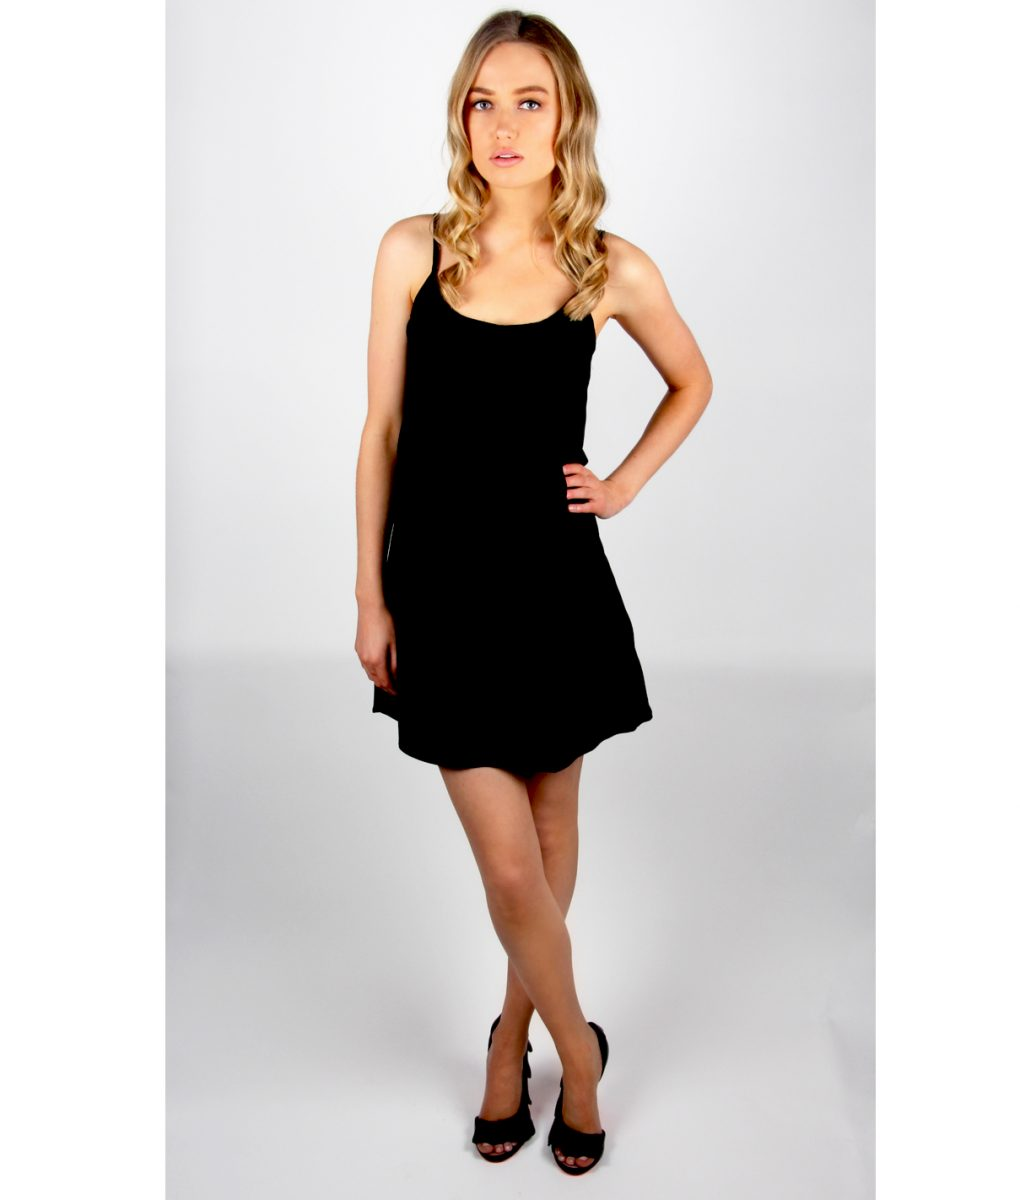 Alila Black Chiffon Layer top dress front